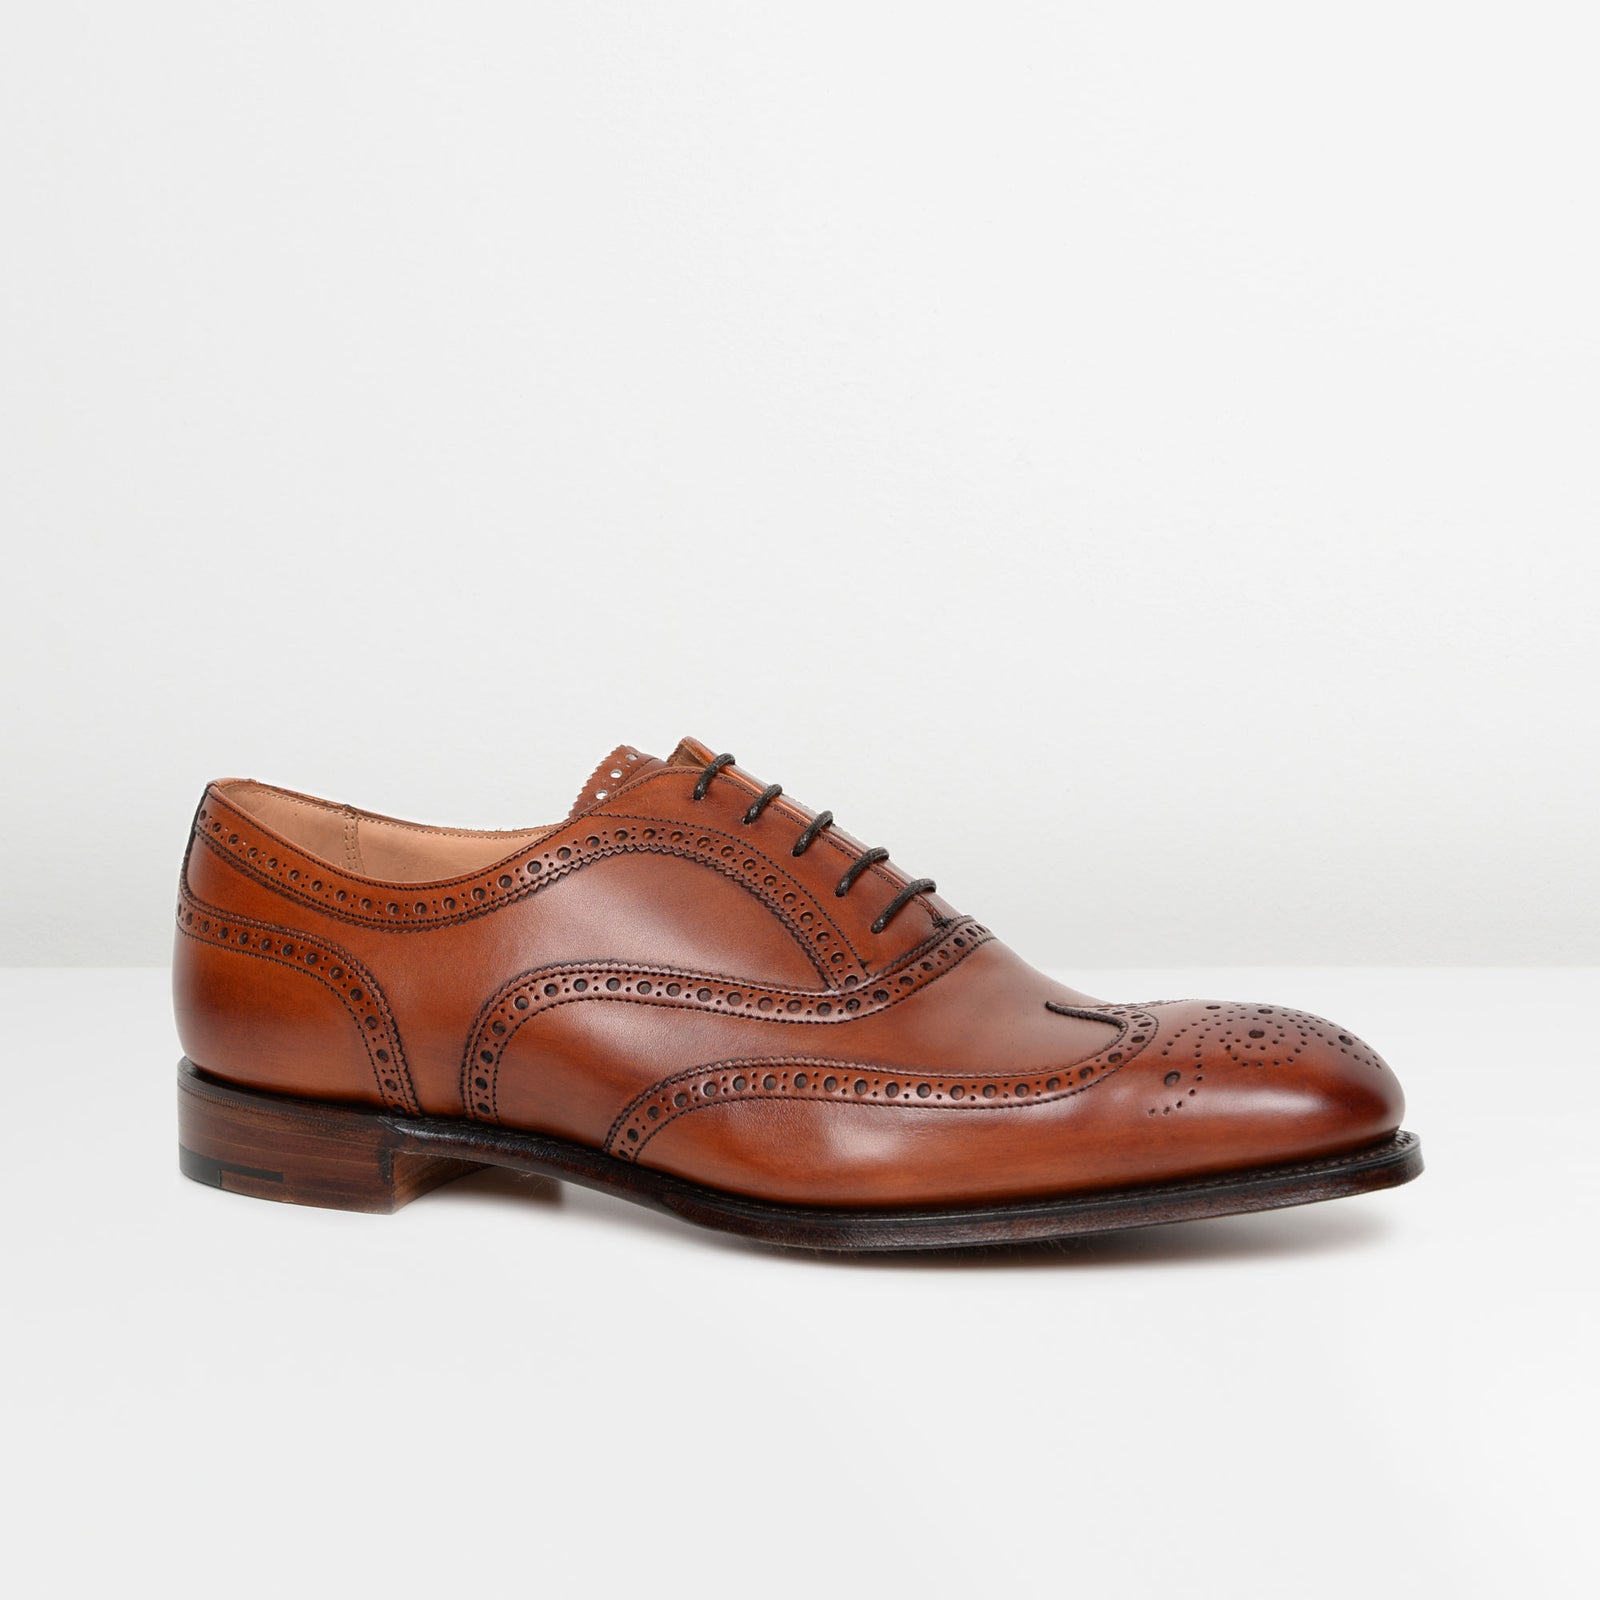 Dark Leaf Arthur III Oxford Brogues